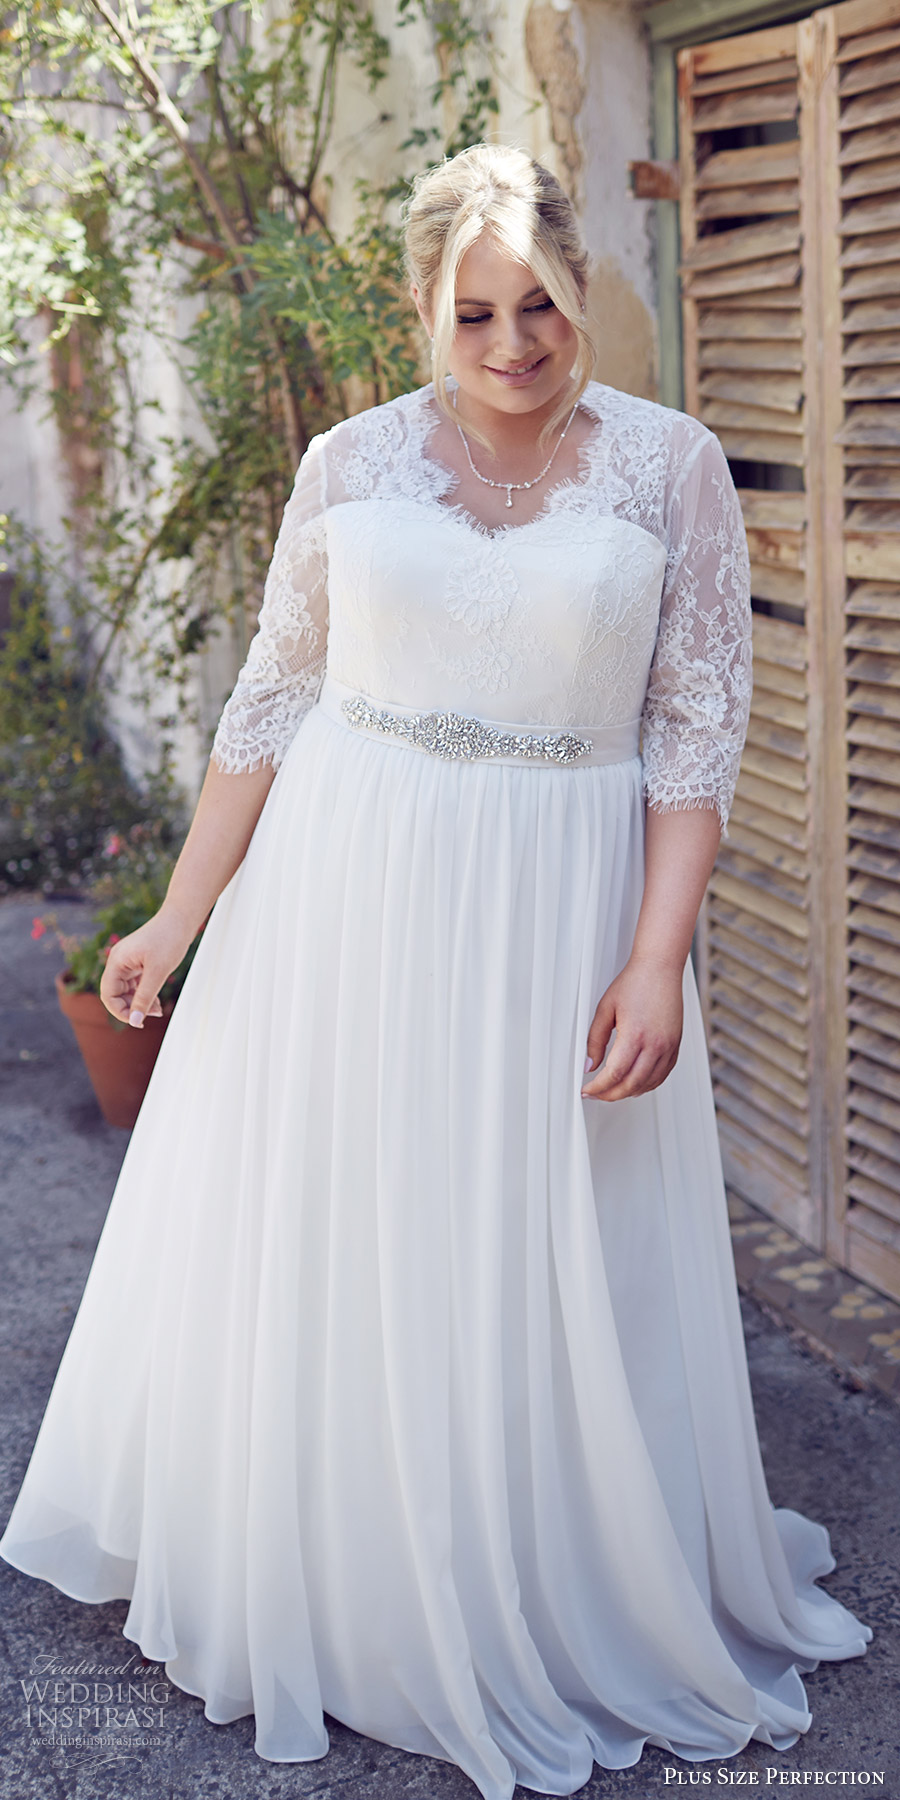 Plus size perfection wedding dresses its a love story campaign plus size perfection bridal 2016 3 quarter sleeves sweetheart illusion v neck lace bodice a line junglespirit Choice Image